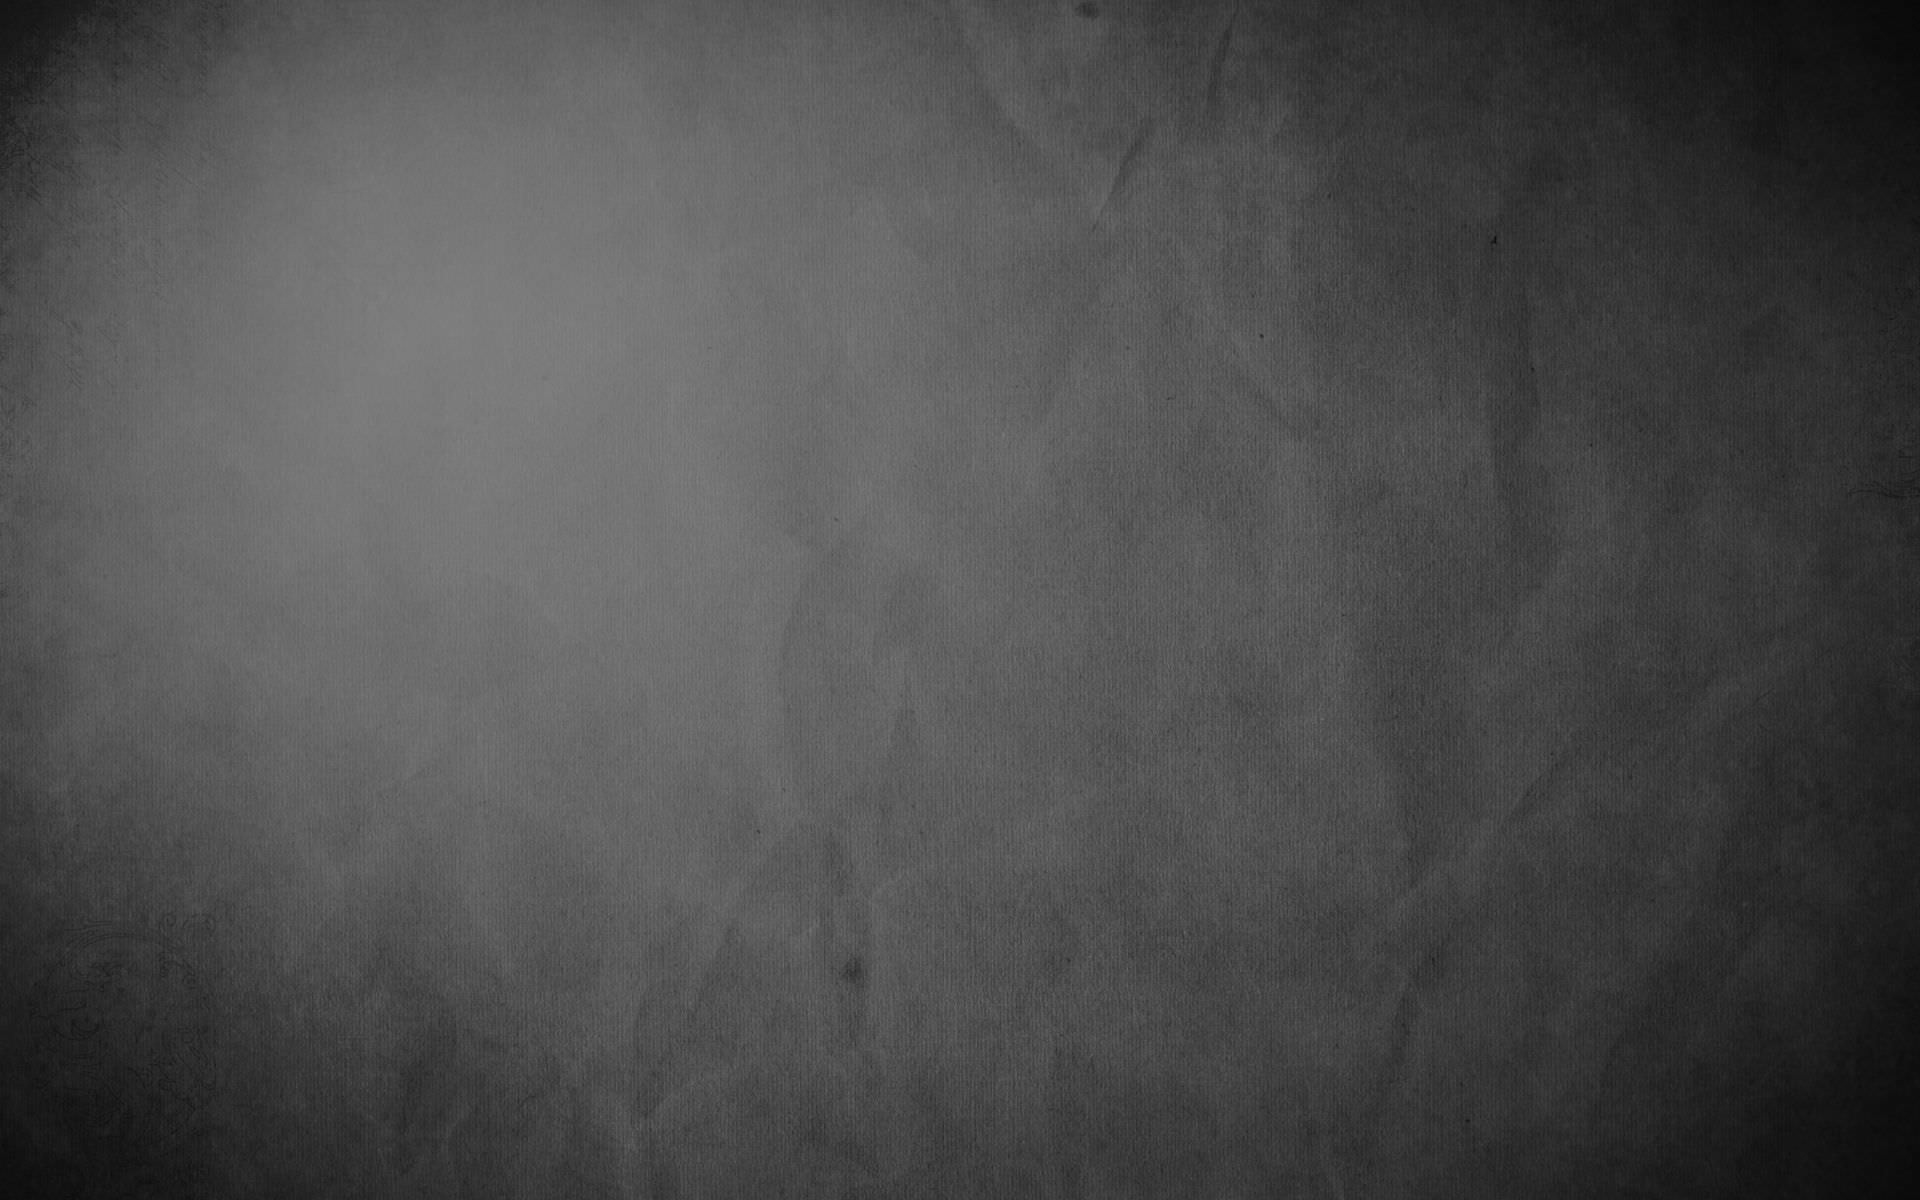 Plain Black Grunge Background